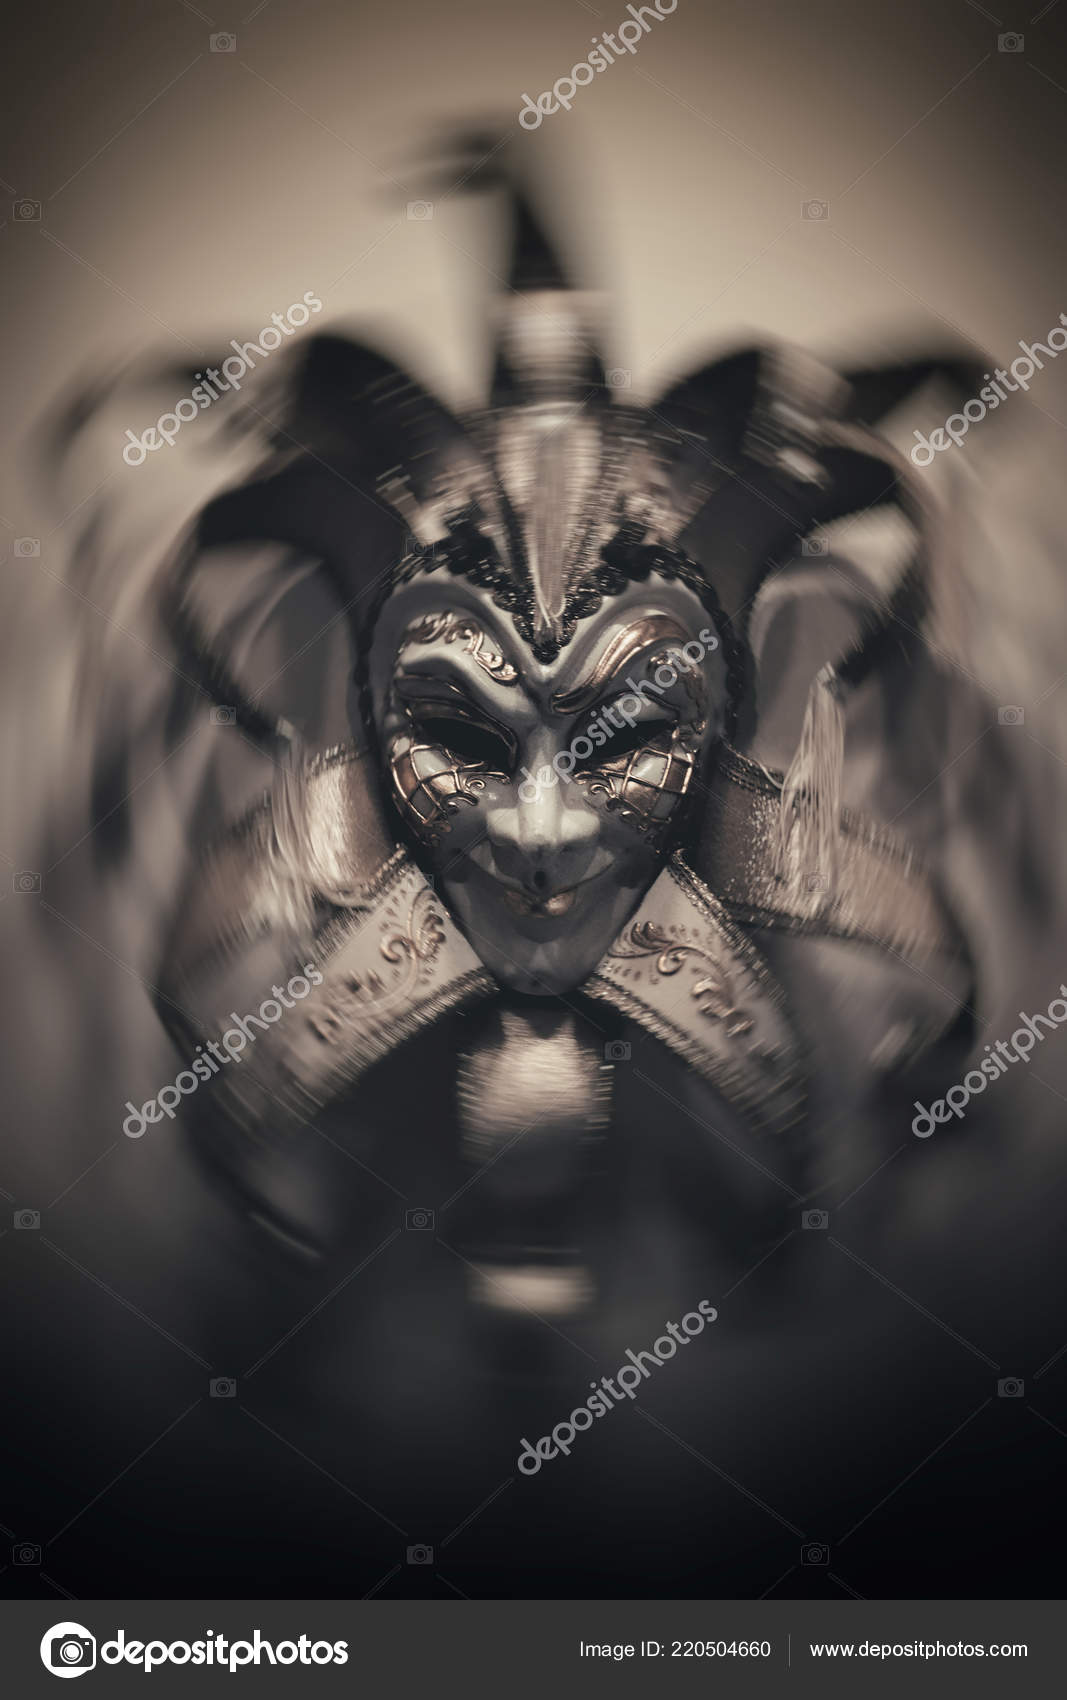 Sinister joker mask dark background italy style mask stock photo